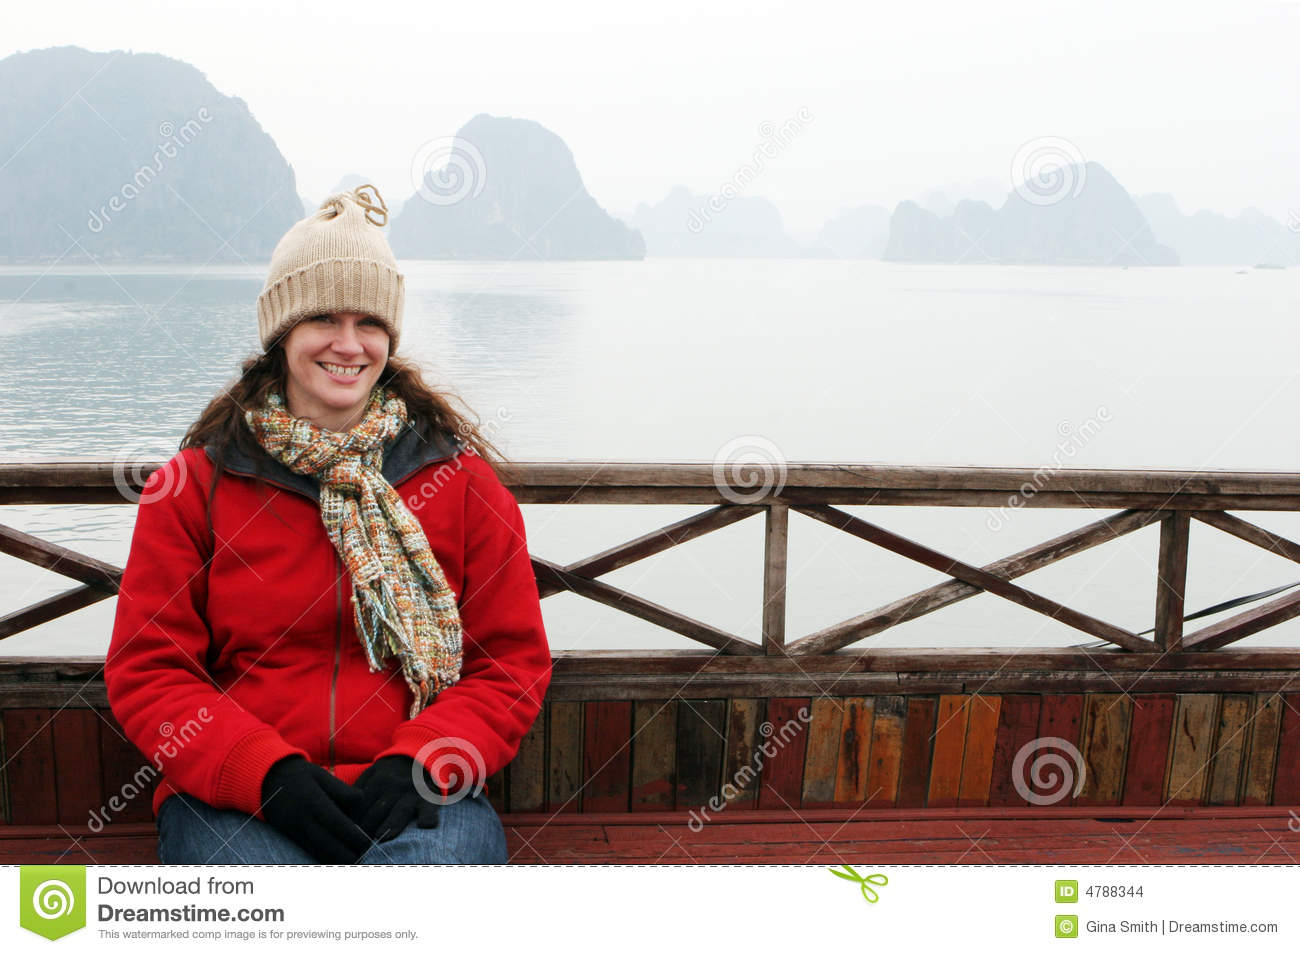 Woman on the deck of a boat dressed in winter clothing.